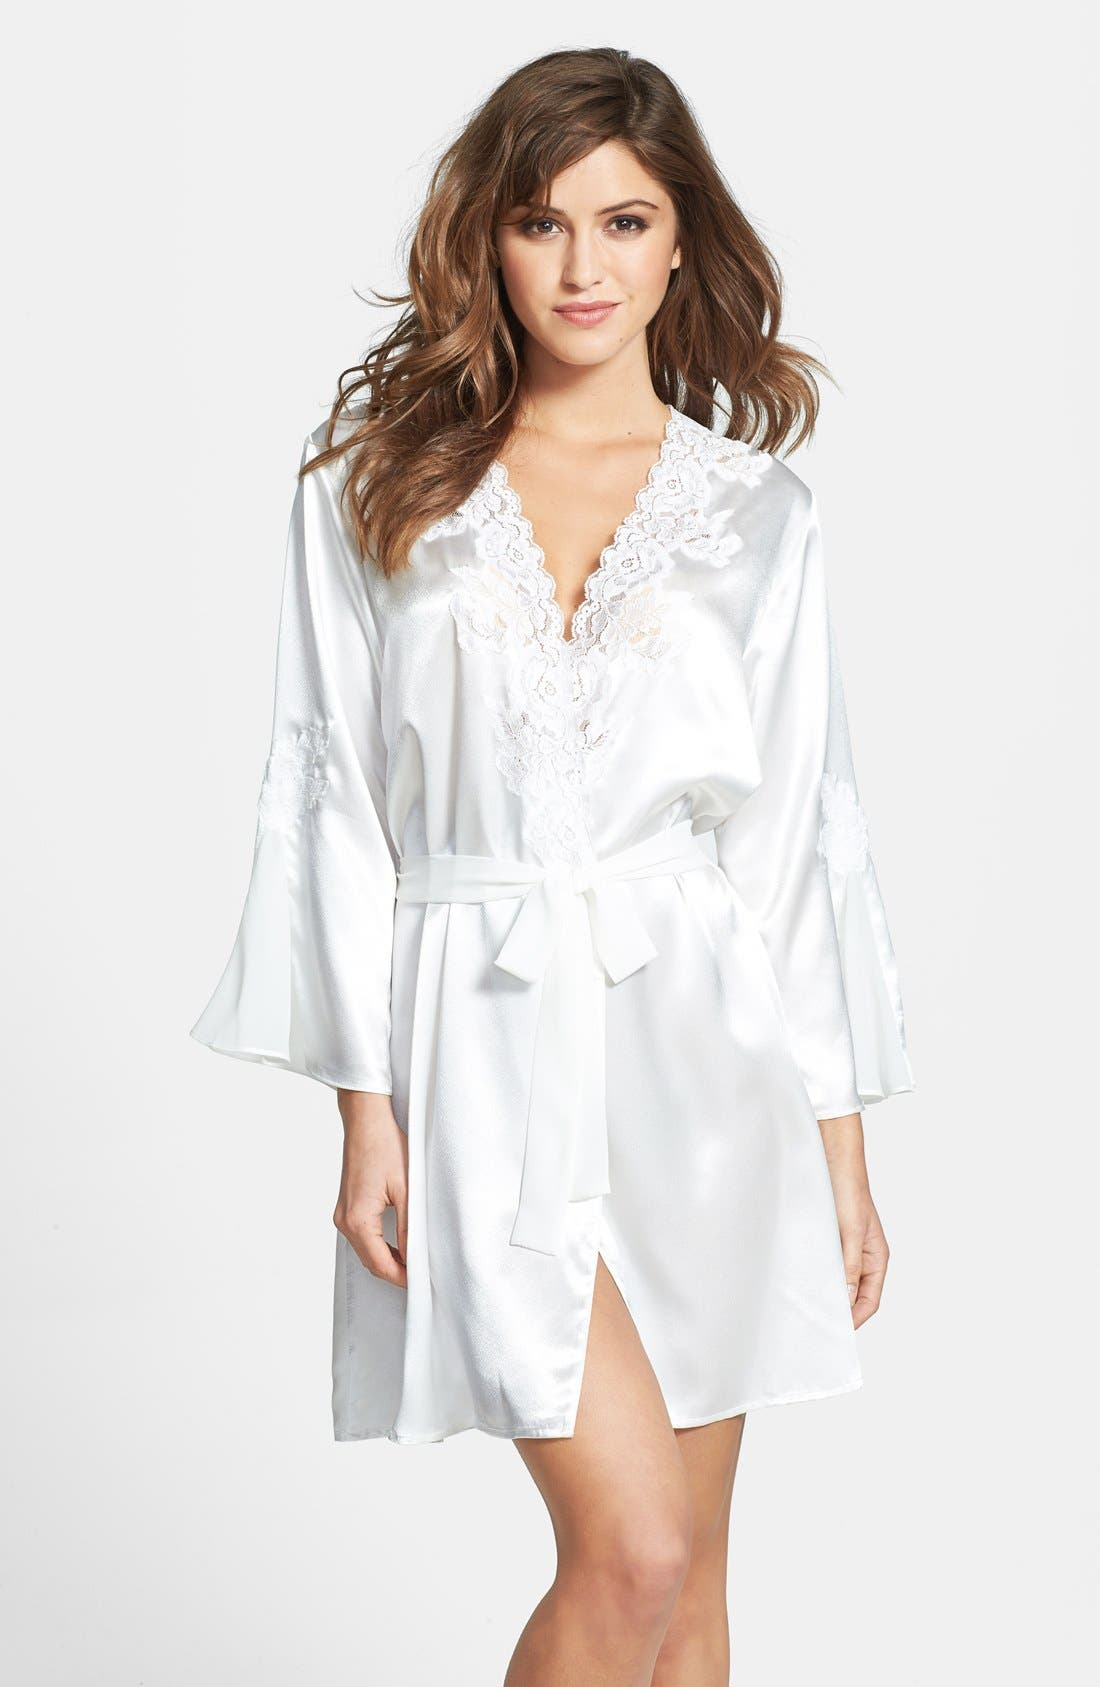 Alternate Image 1 Selected - Oscar de la Renta Sleepwear 'Evening Bliss' Satin Charmeuse Wrap Robe